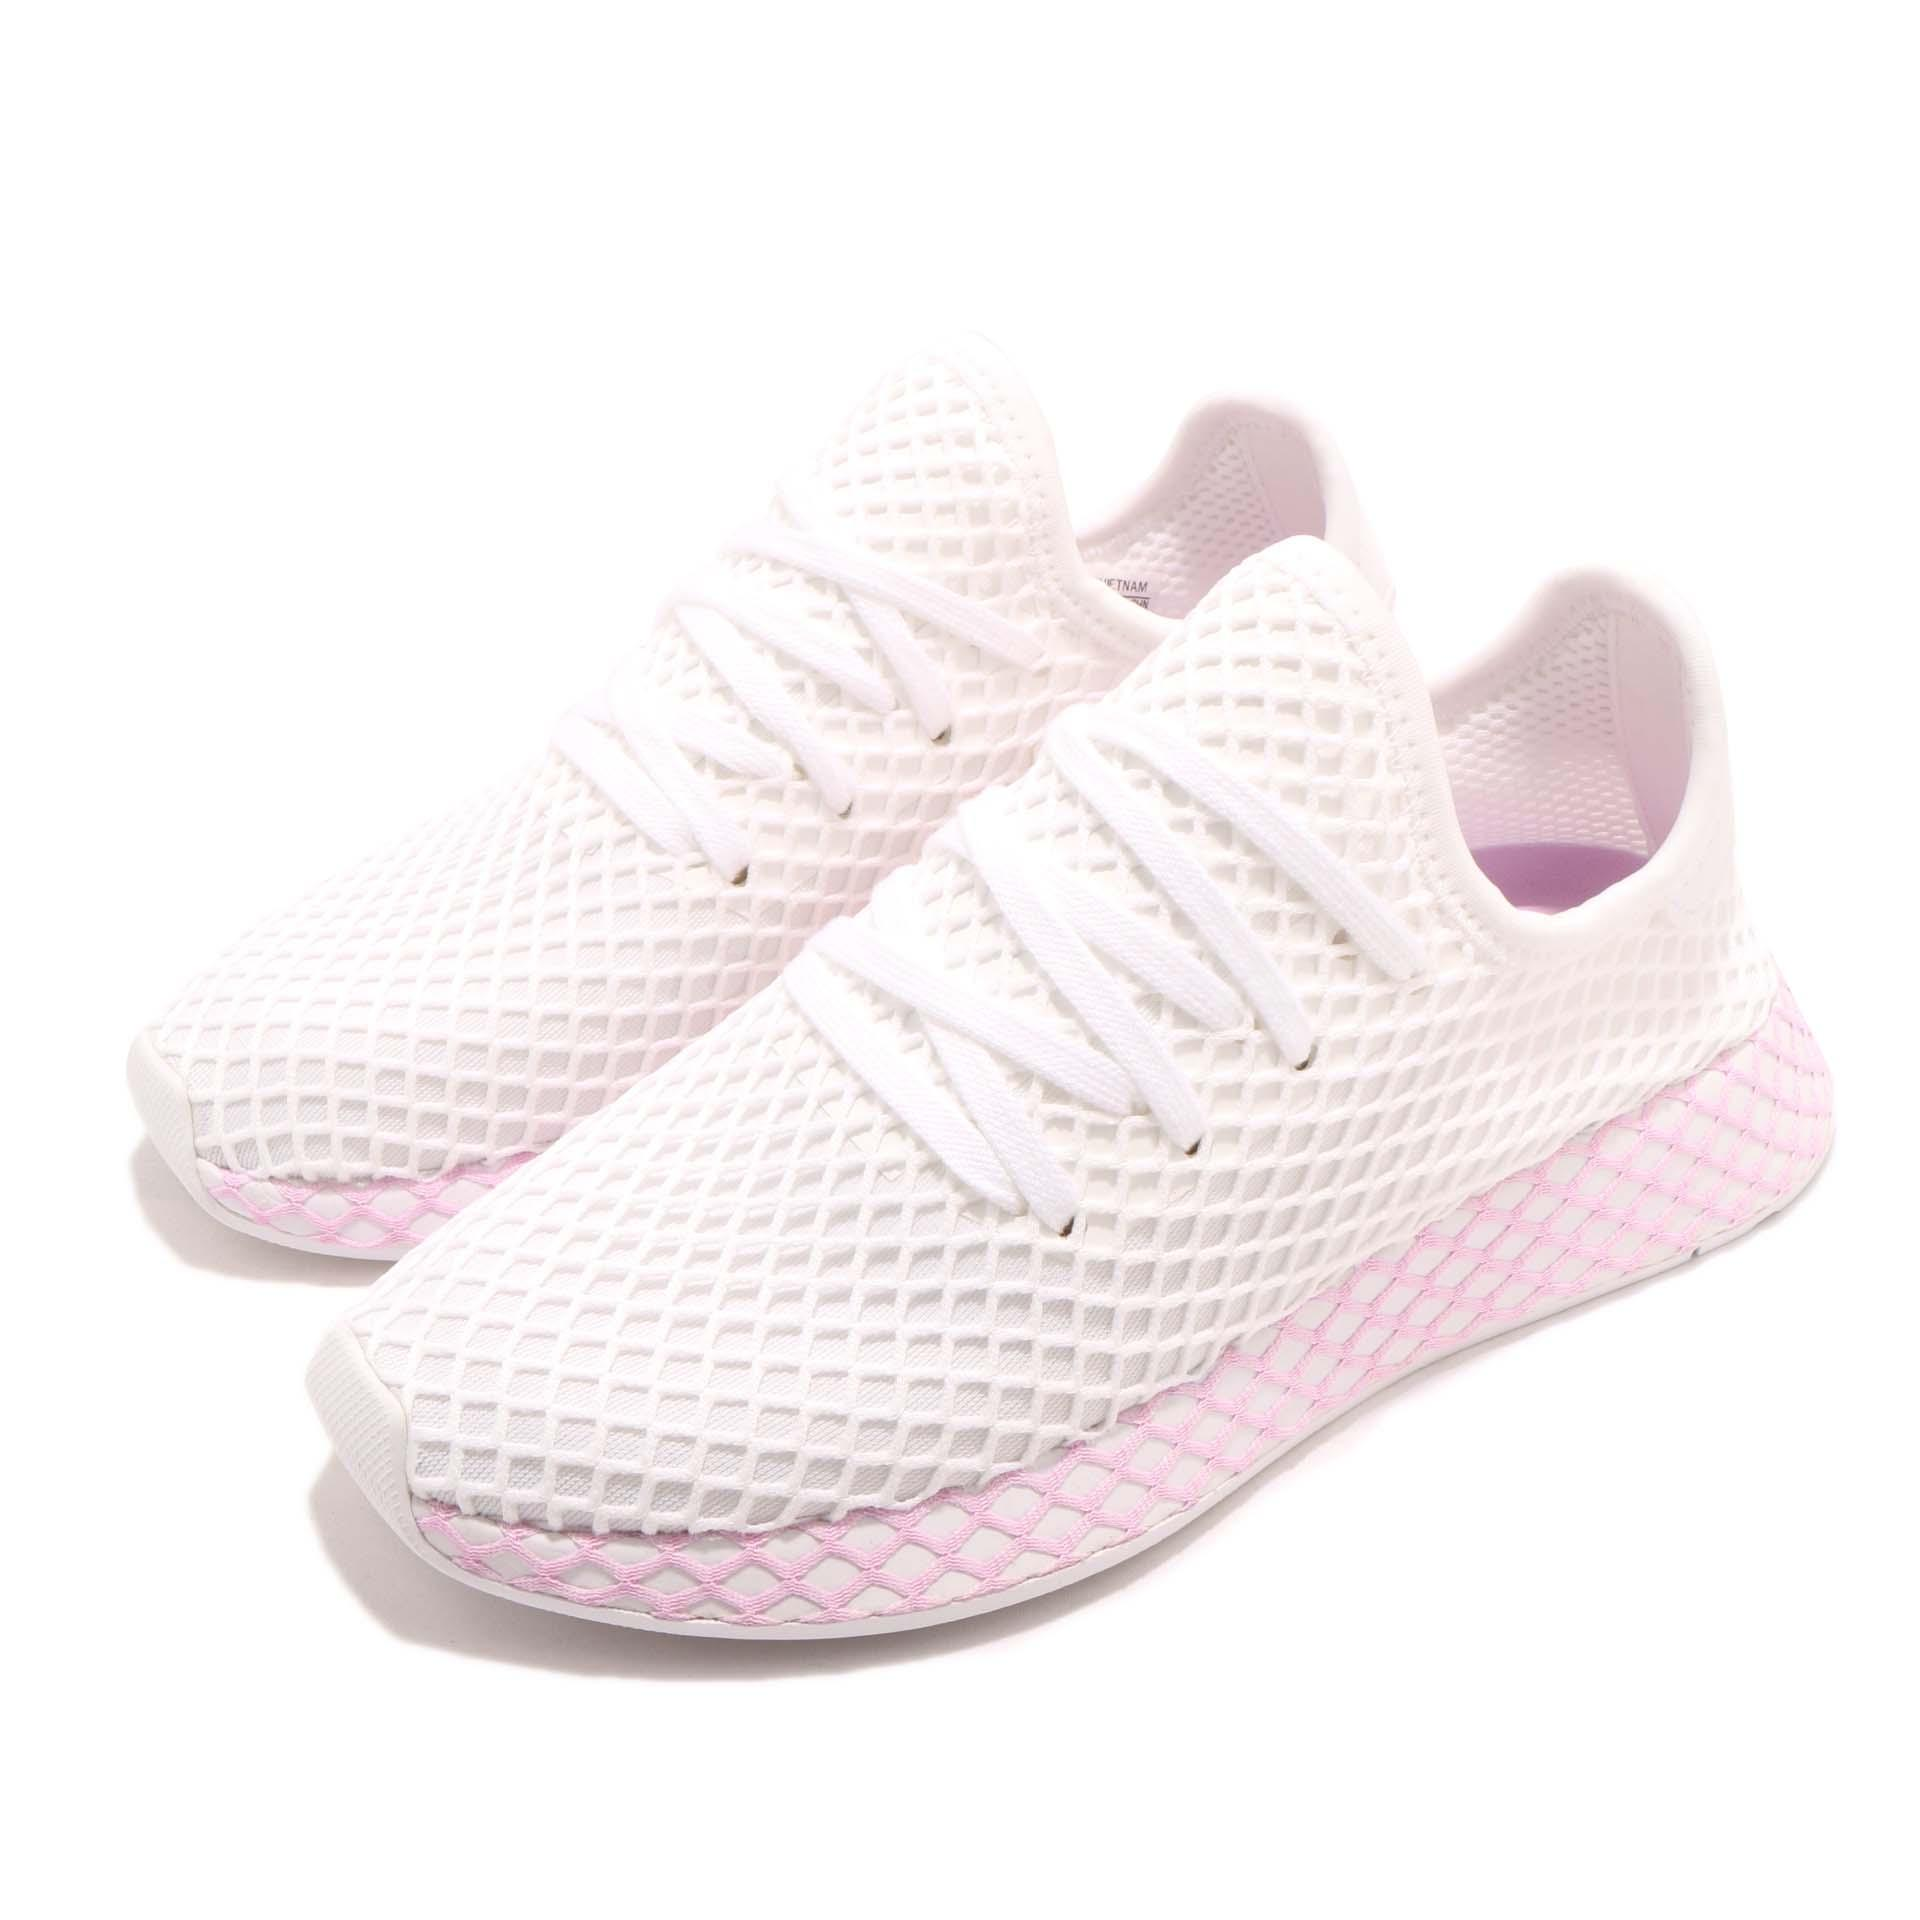 0fd7cb88e08 Details about adidas Originals Deerupt W Runner White Lilac Women Running  Shoes Sneaker B37601